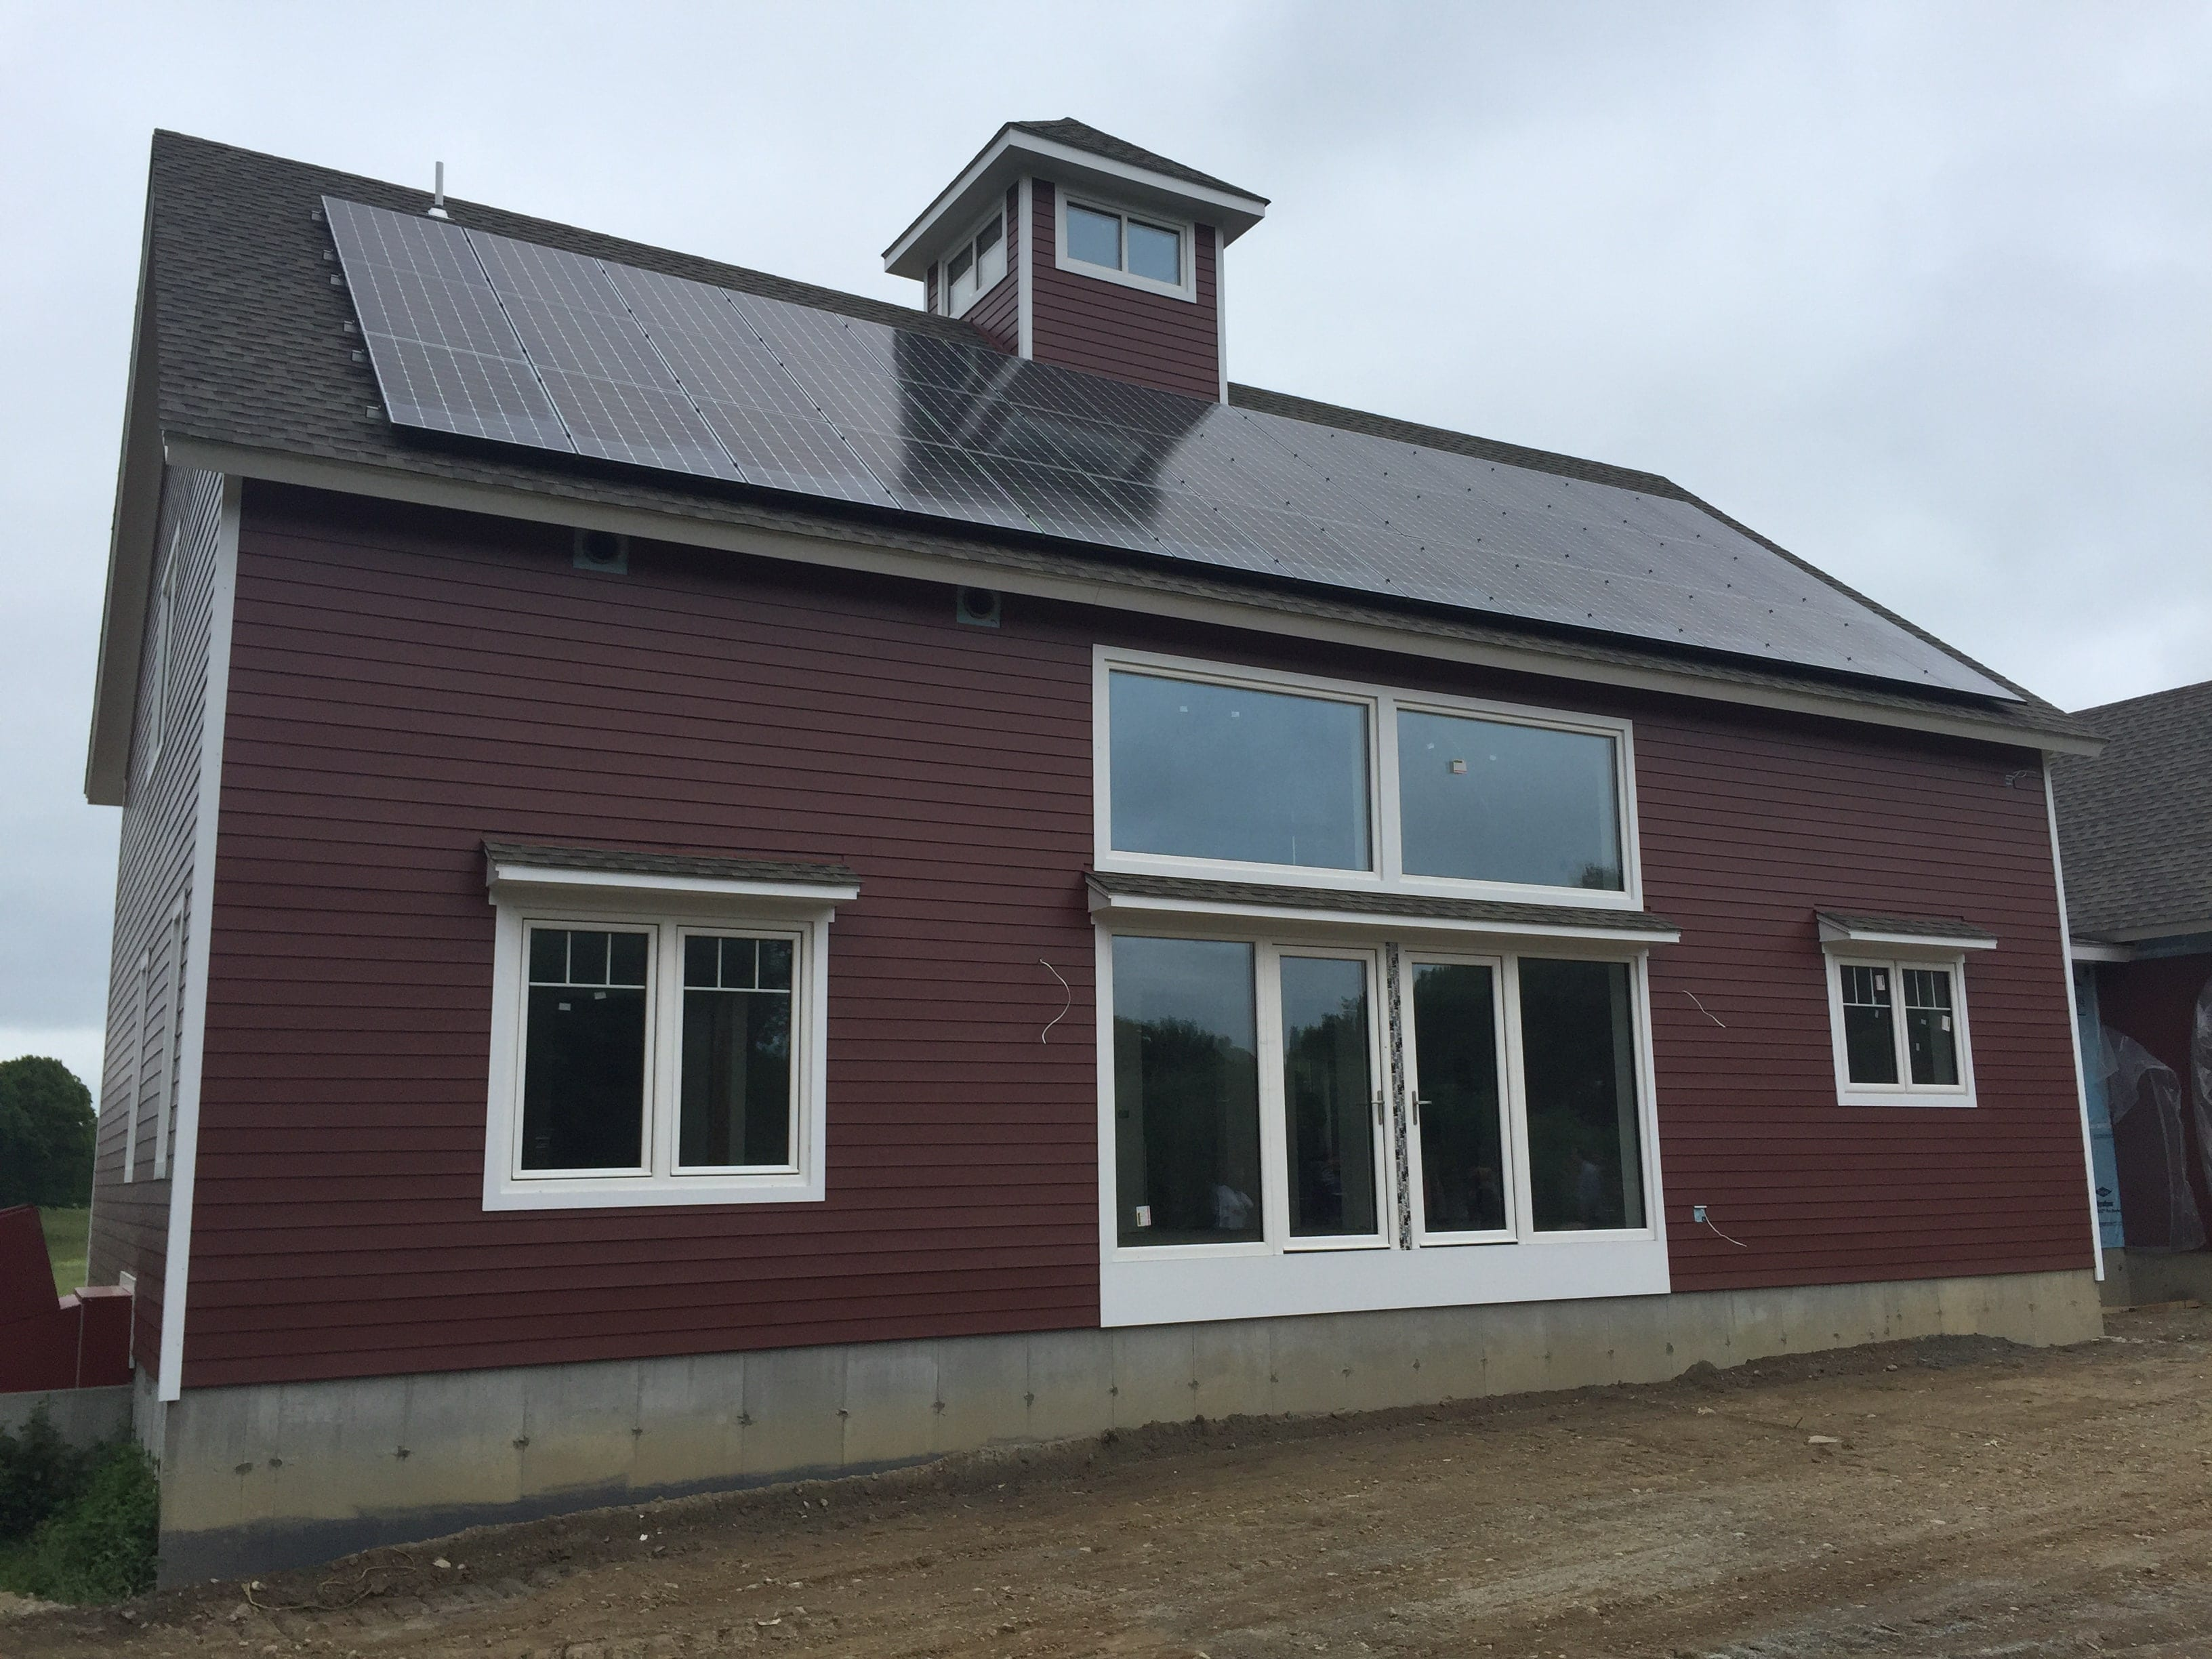 6 Estimates Of Passive House Cost And Return On Investment